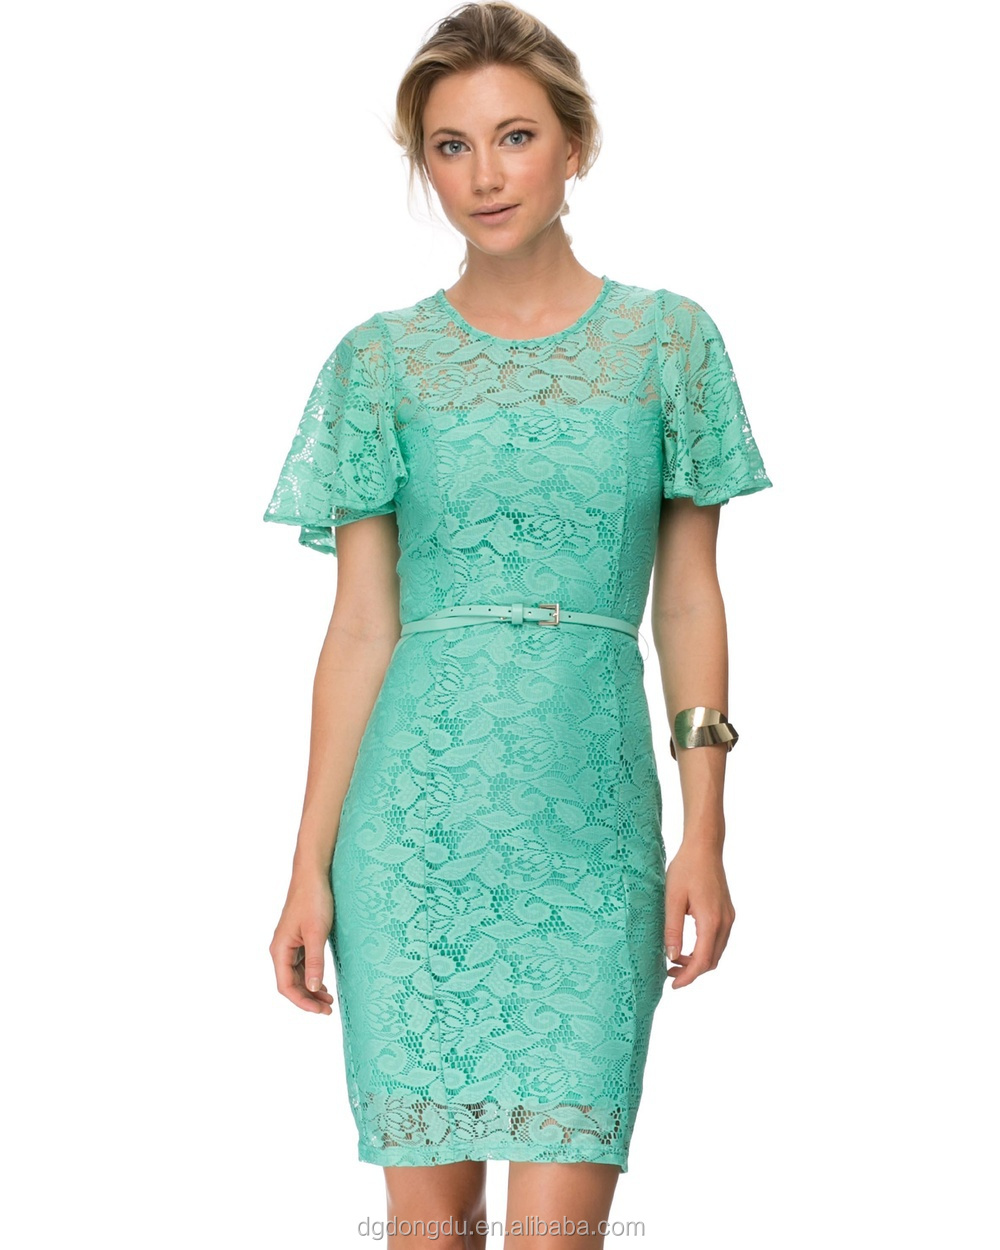 Lace Dresses: Find your perfect dress featuring tons of styles and fashions from tennesseemyblogw0.cf Your Online Women's Clothing Store! Get 5% in rewards with Club O! Shop The Trends Women's Spaghetti Strap Ruffled Gown With Sweetheart Neckline And Floral Lace Design. 2 Reviews.